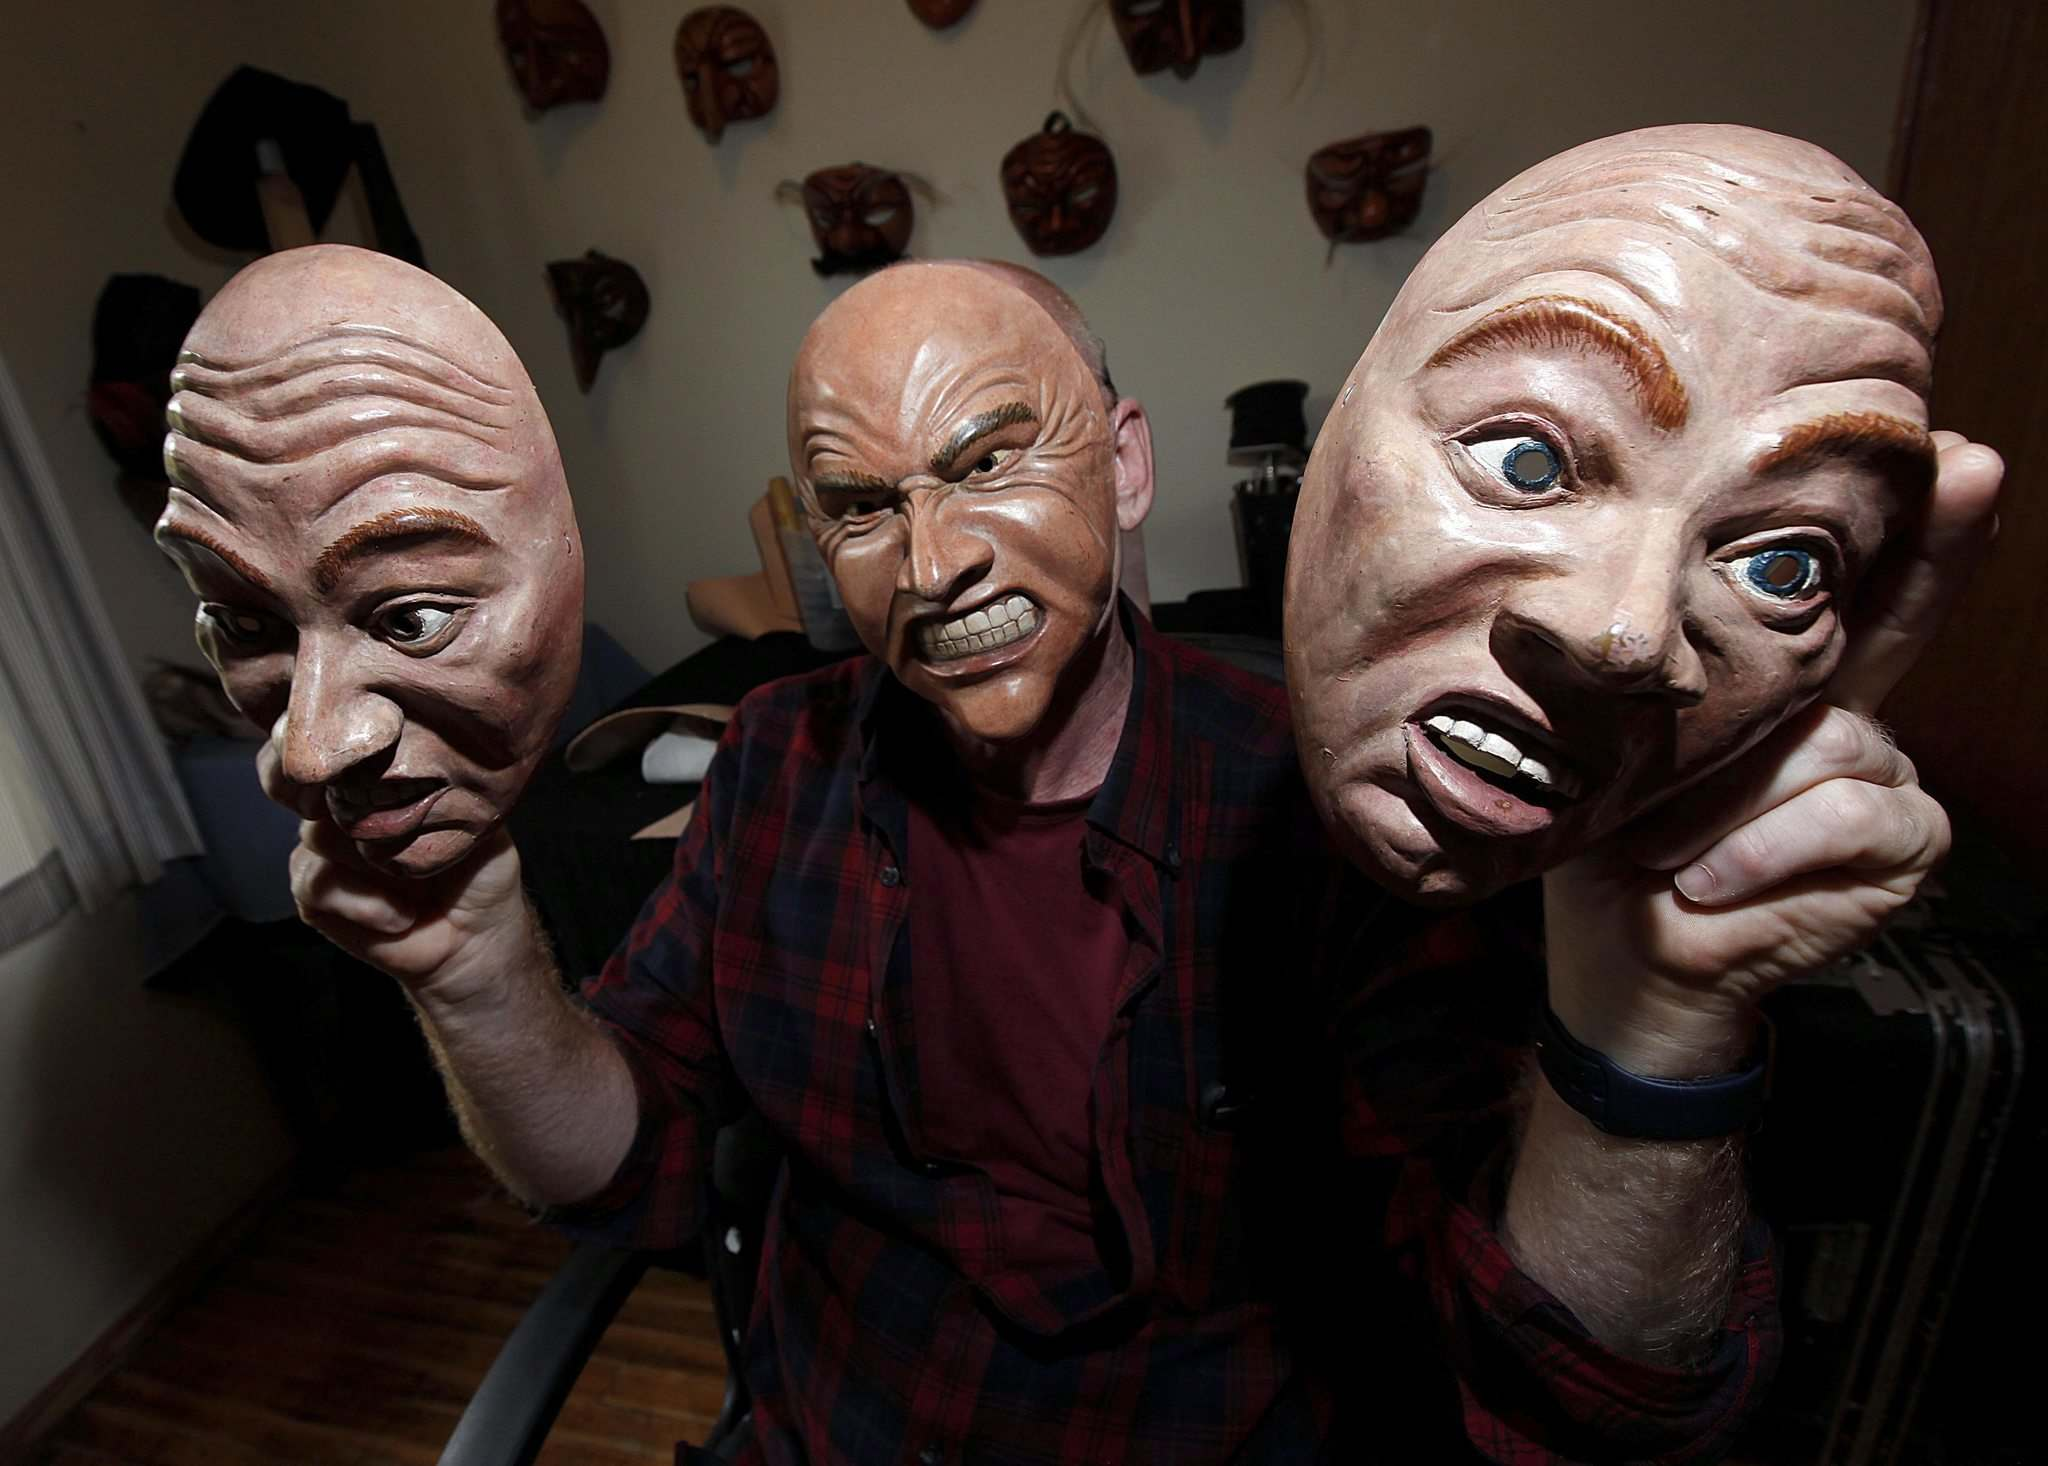 <p>Chris Sigurdson peers out from behind one of his Commedia dell&rsquo;arte masks modelled after his own face. He holds two more expressions.</p>